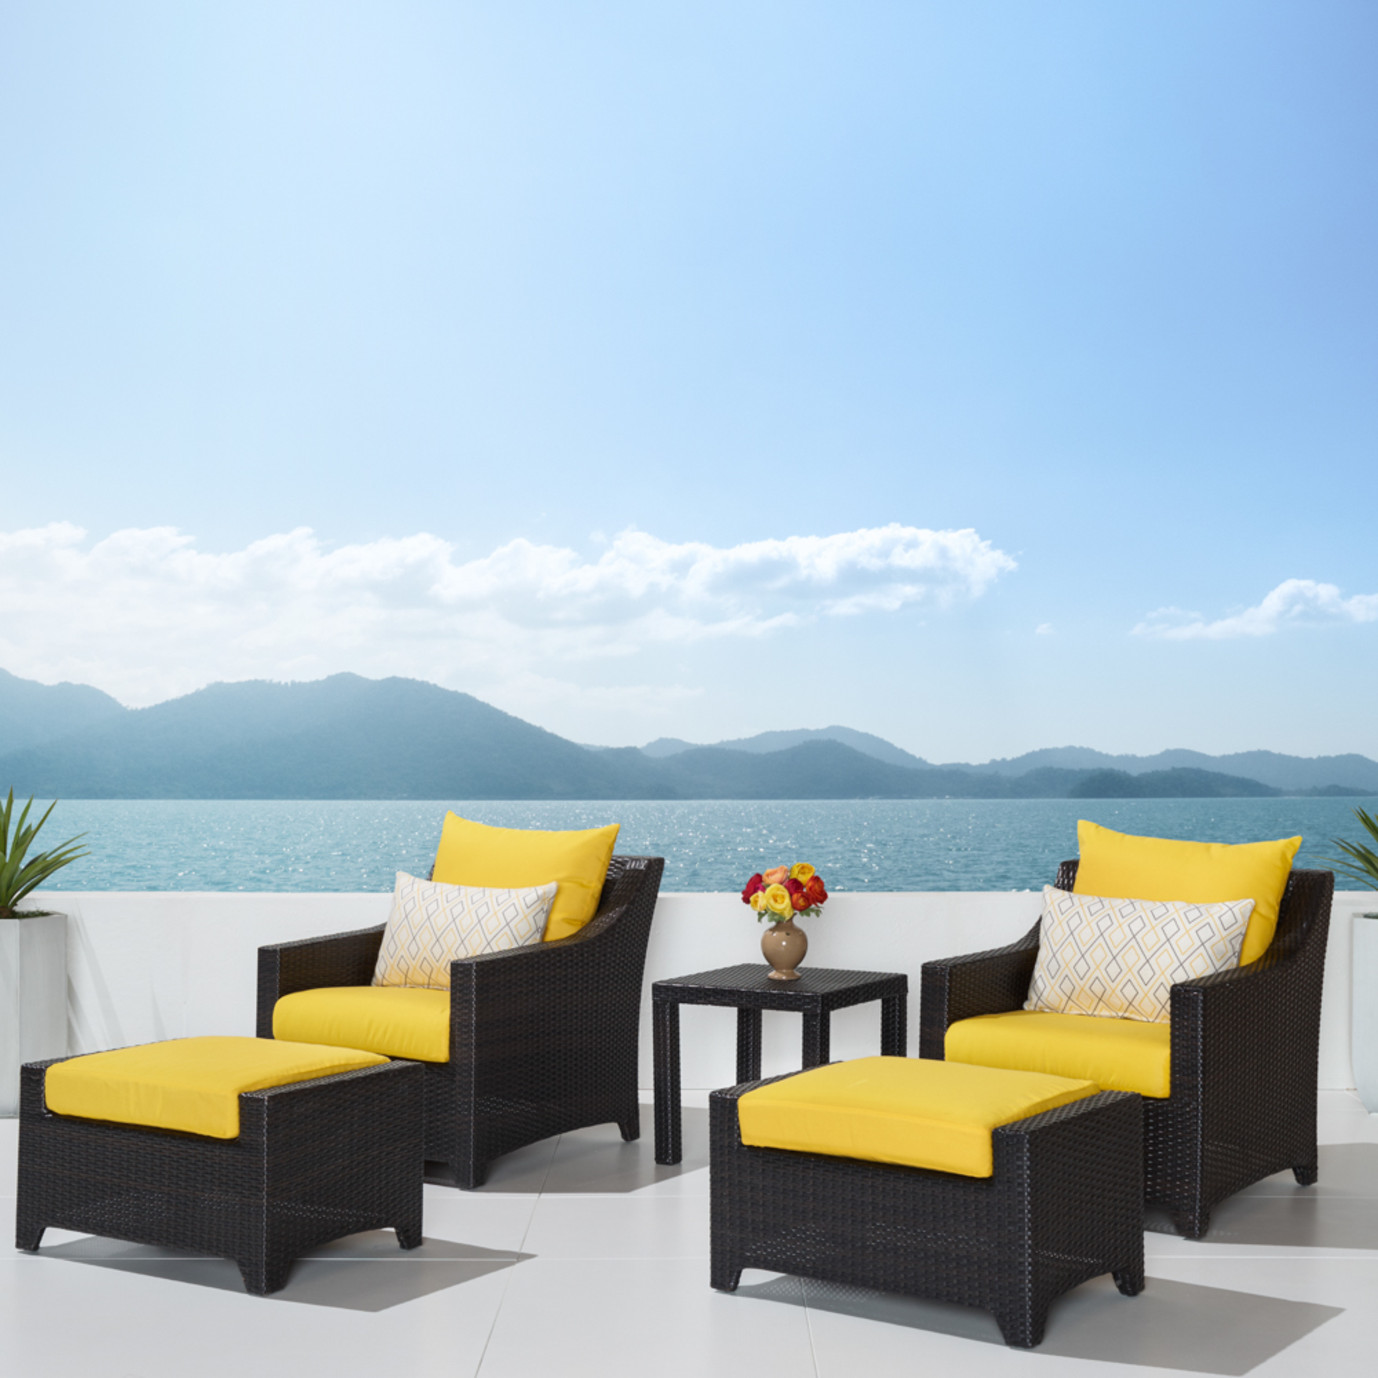 Deco™ 5pc Club Chair & Ottoman Set - Sunflower Yellow